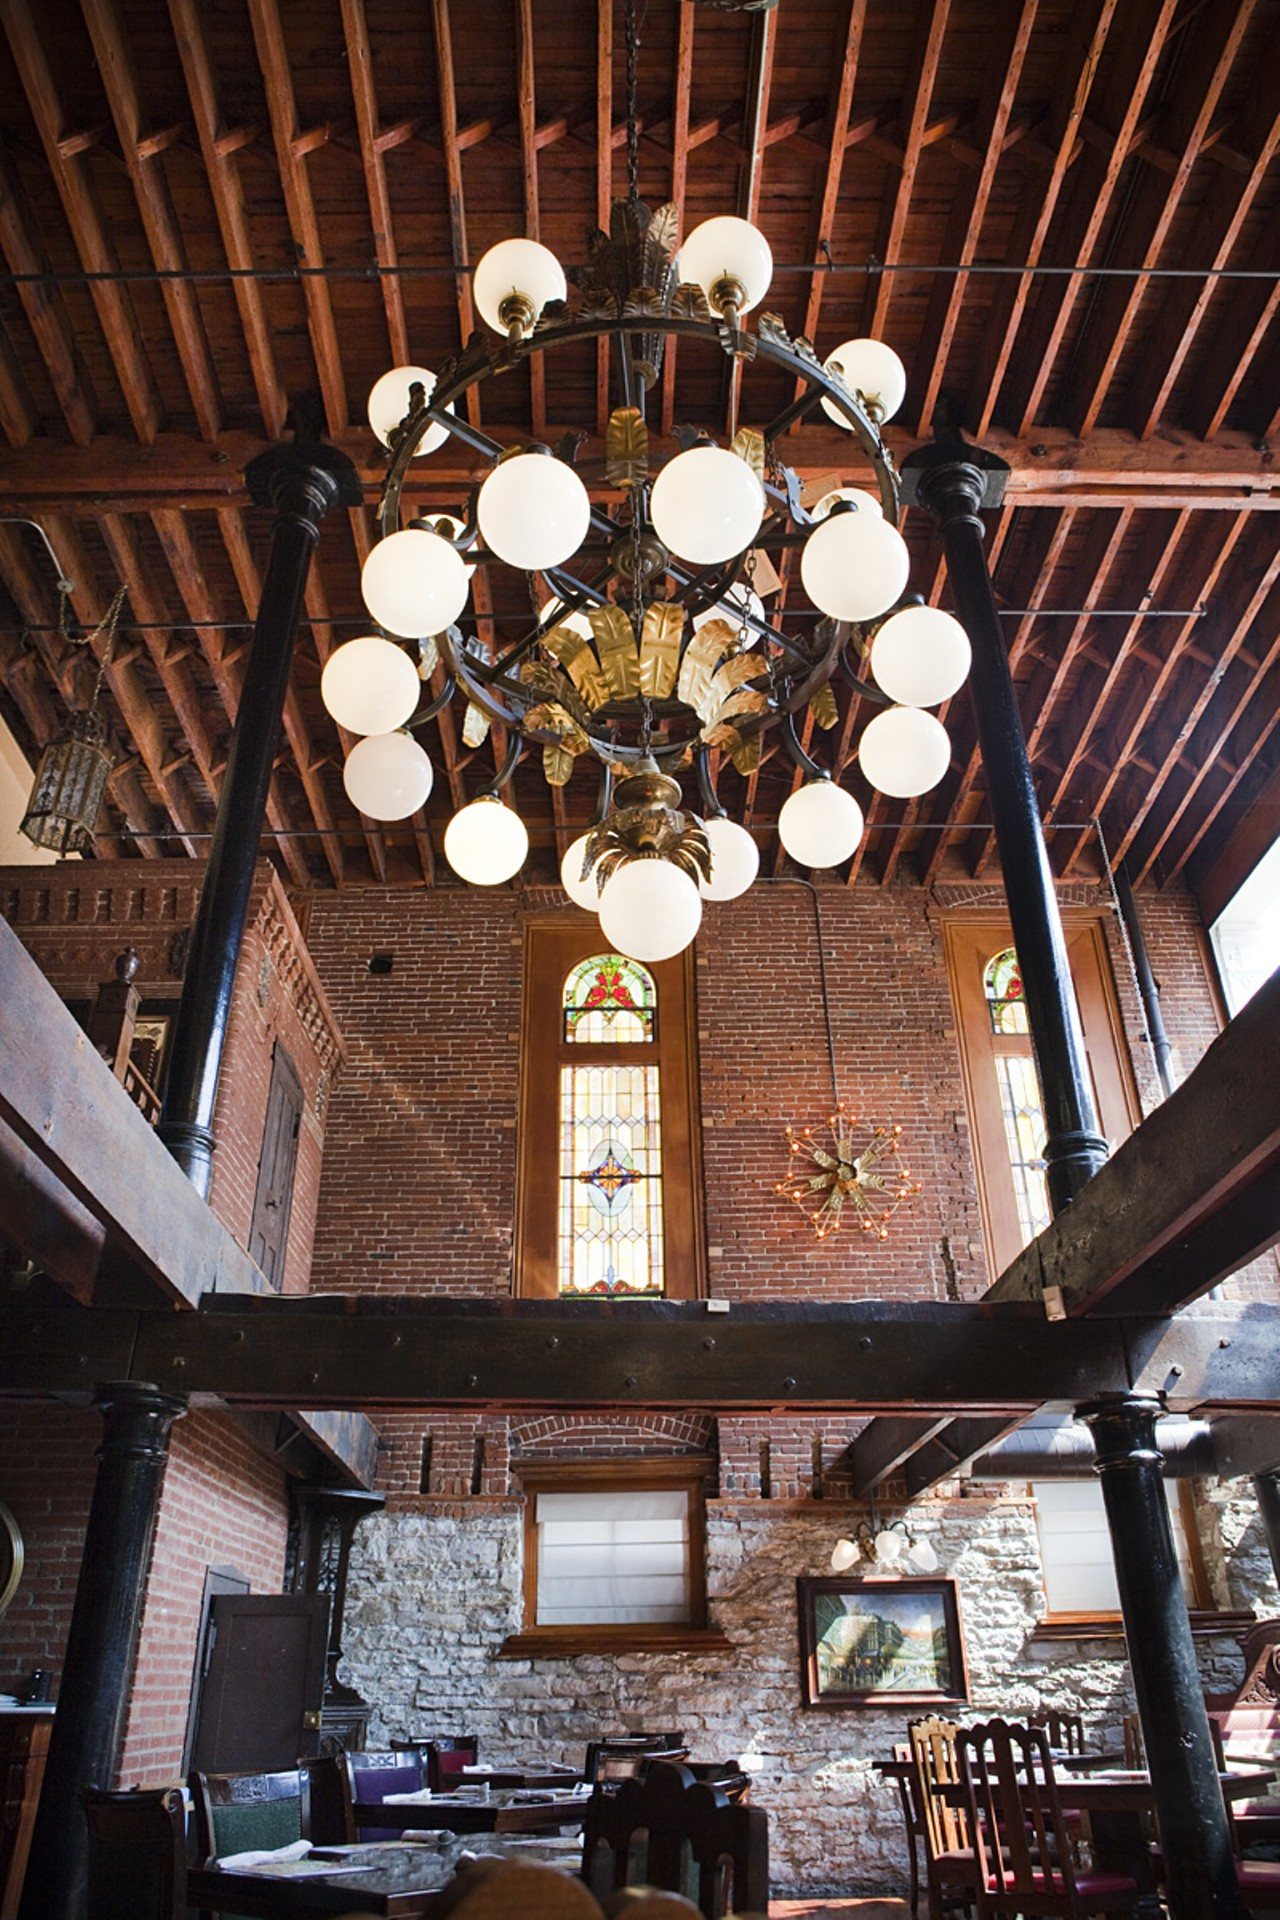 Drury Hotels carefully renovated the Union Market building in , adding two additional stories for guest rooms. Built in , original features were preserved in the hotel lobby and mezzanine meeting level. Only blocks from the Convention Center, the Drury Inn & Suites St. Louis Convention Center is walkable from downtown attractions and Washington Avenue entertainment.